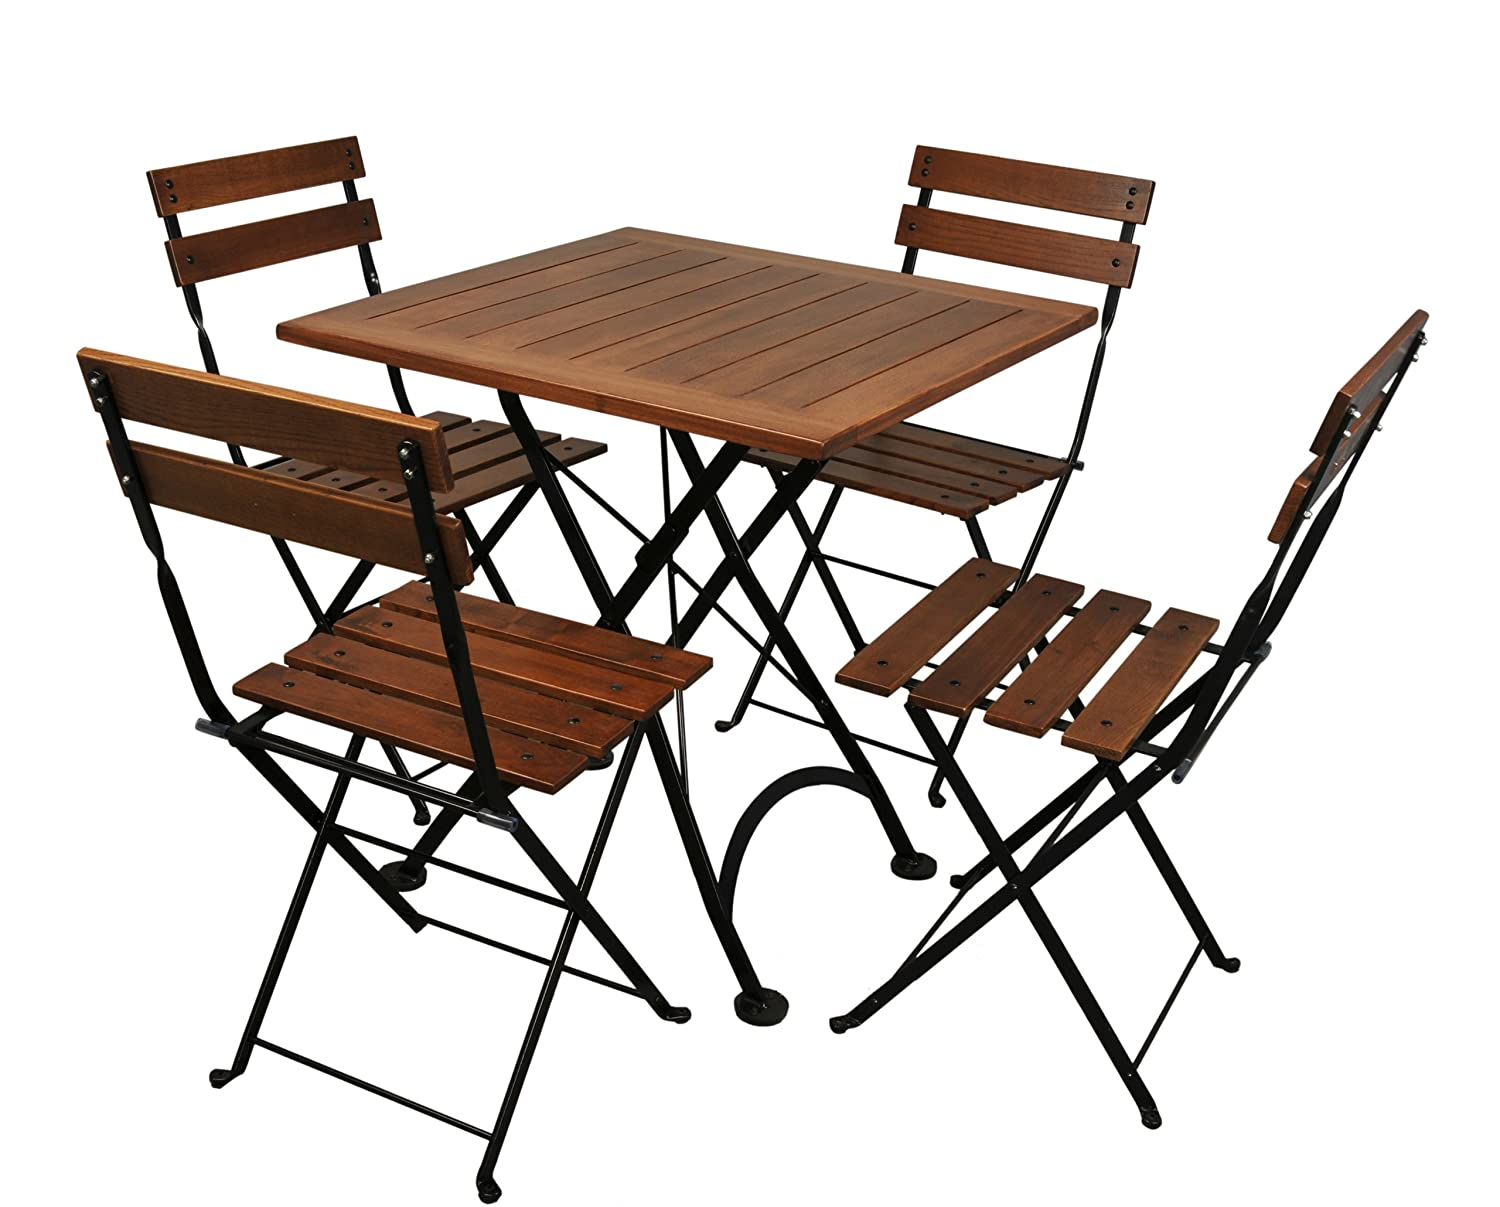 Amazon.com : Mobel Designhaus French Café Bistro Folding Side Chair, Jet  Black Frame, European Chestnut Wood Slats With Walnut Stain (Pack Of 2) :  Patio ...